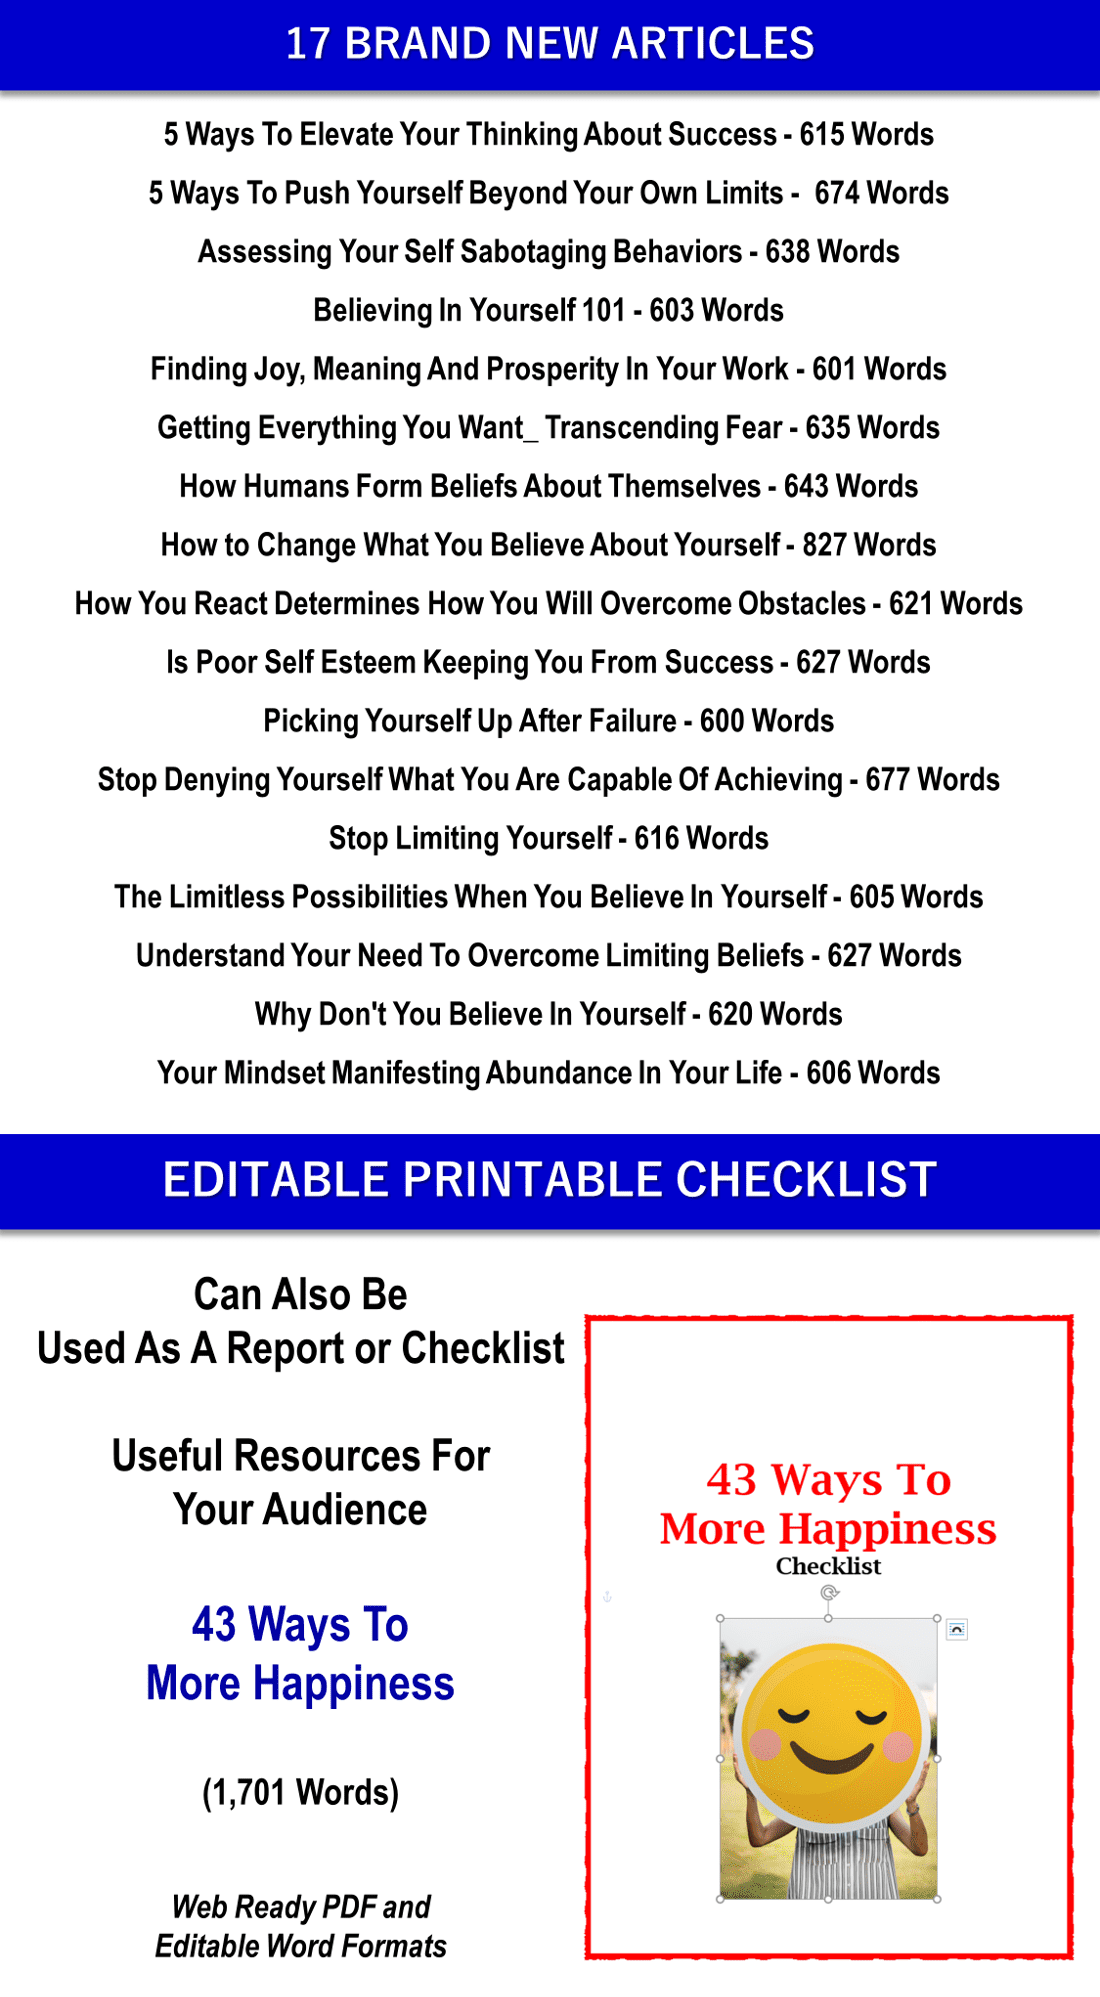 17 Personal Development Articles and Happiness Checklist PLR